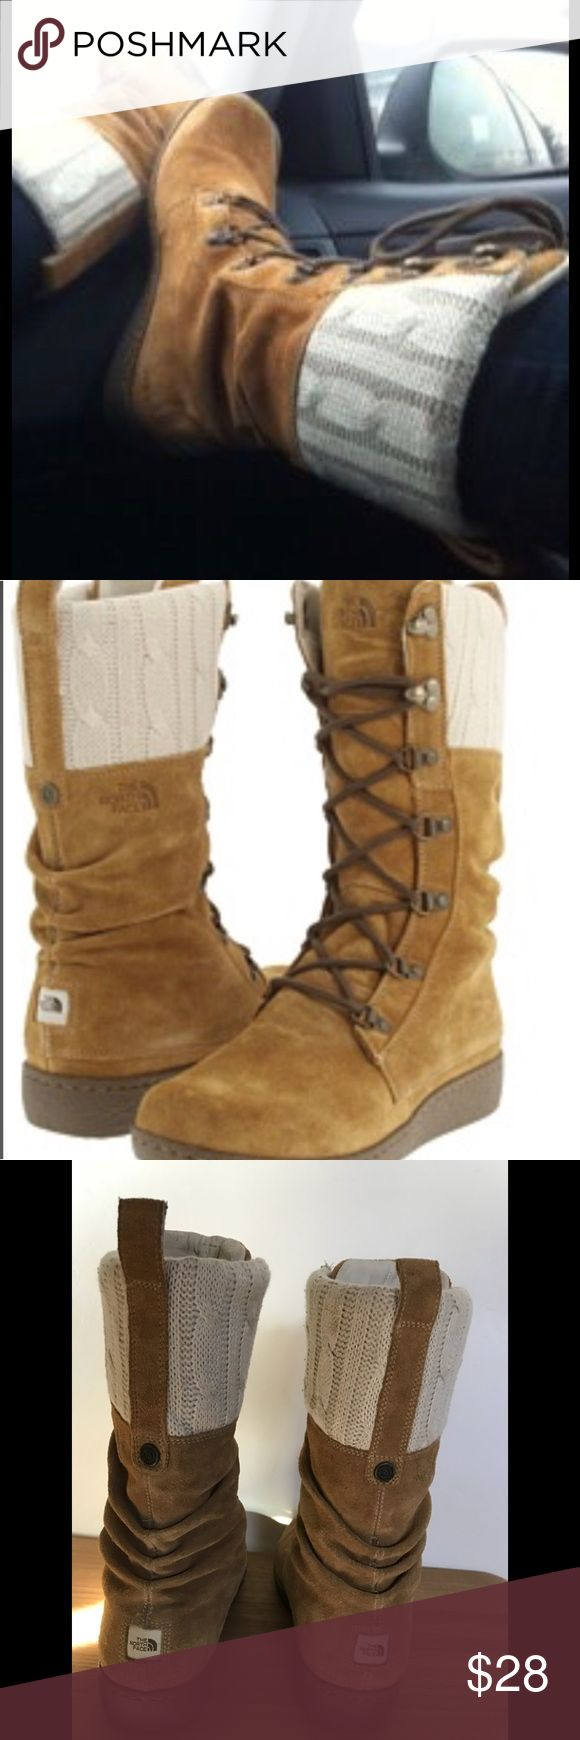 North Face Boots Alycia North Face Alycia Laced Boot in Tan Suede & Cream unbleached natural tone Cable Knit insulated with Primaloft comfortable & cute Size 10 Guc except a very small mark on the knit some small marks on the sole Notthface Shoes